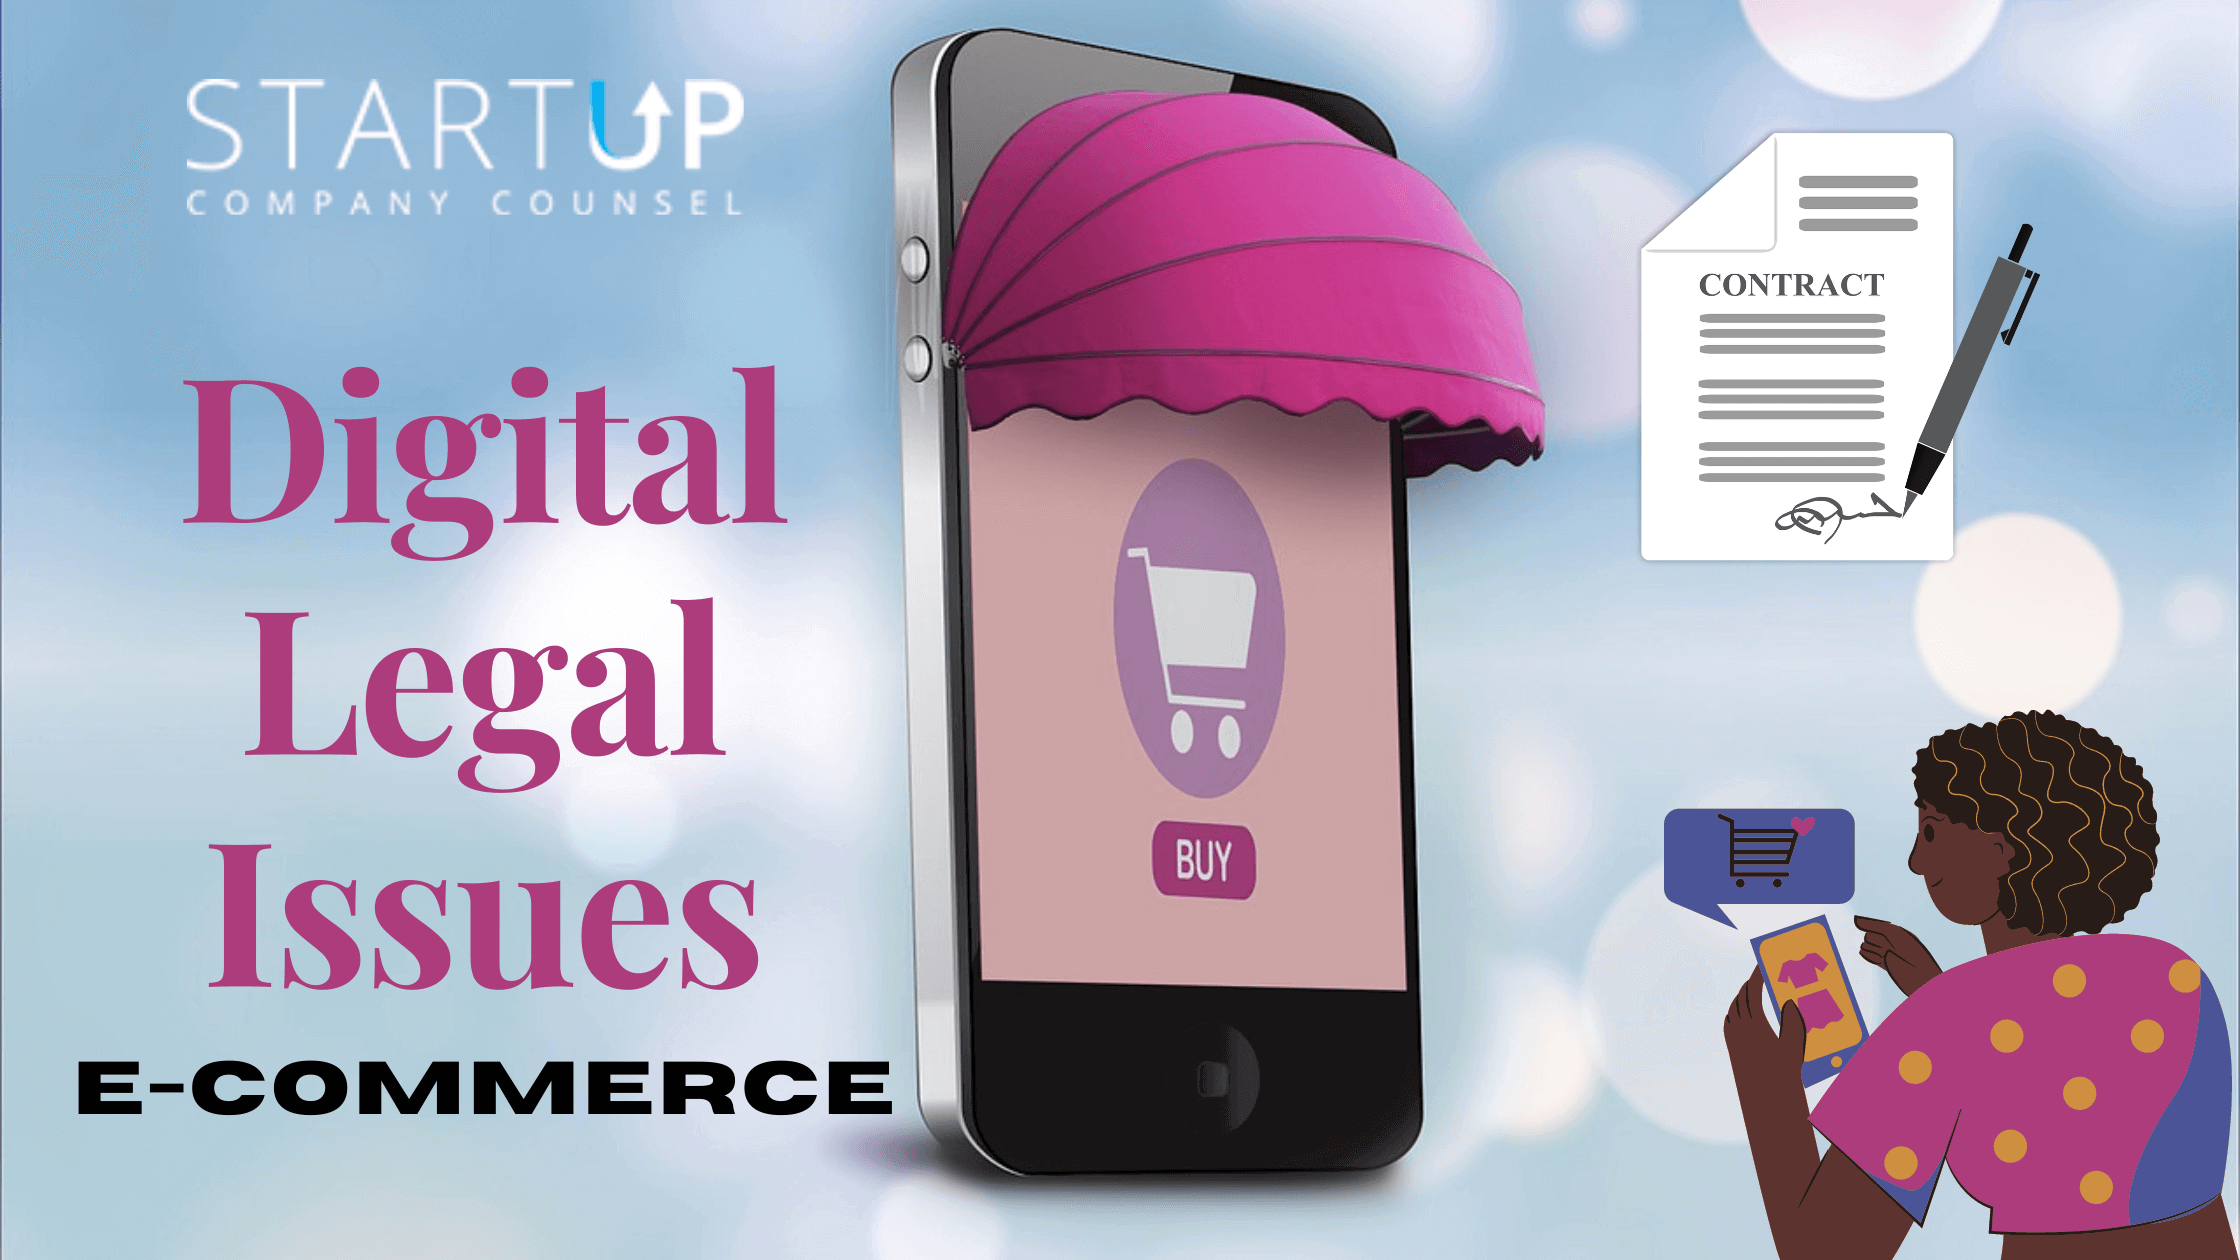 Digital Legal Issues for E-commerce business